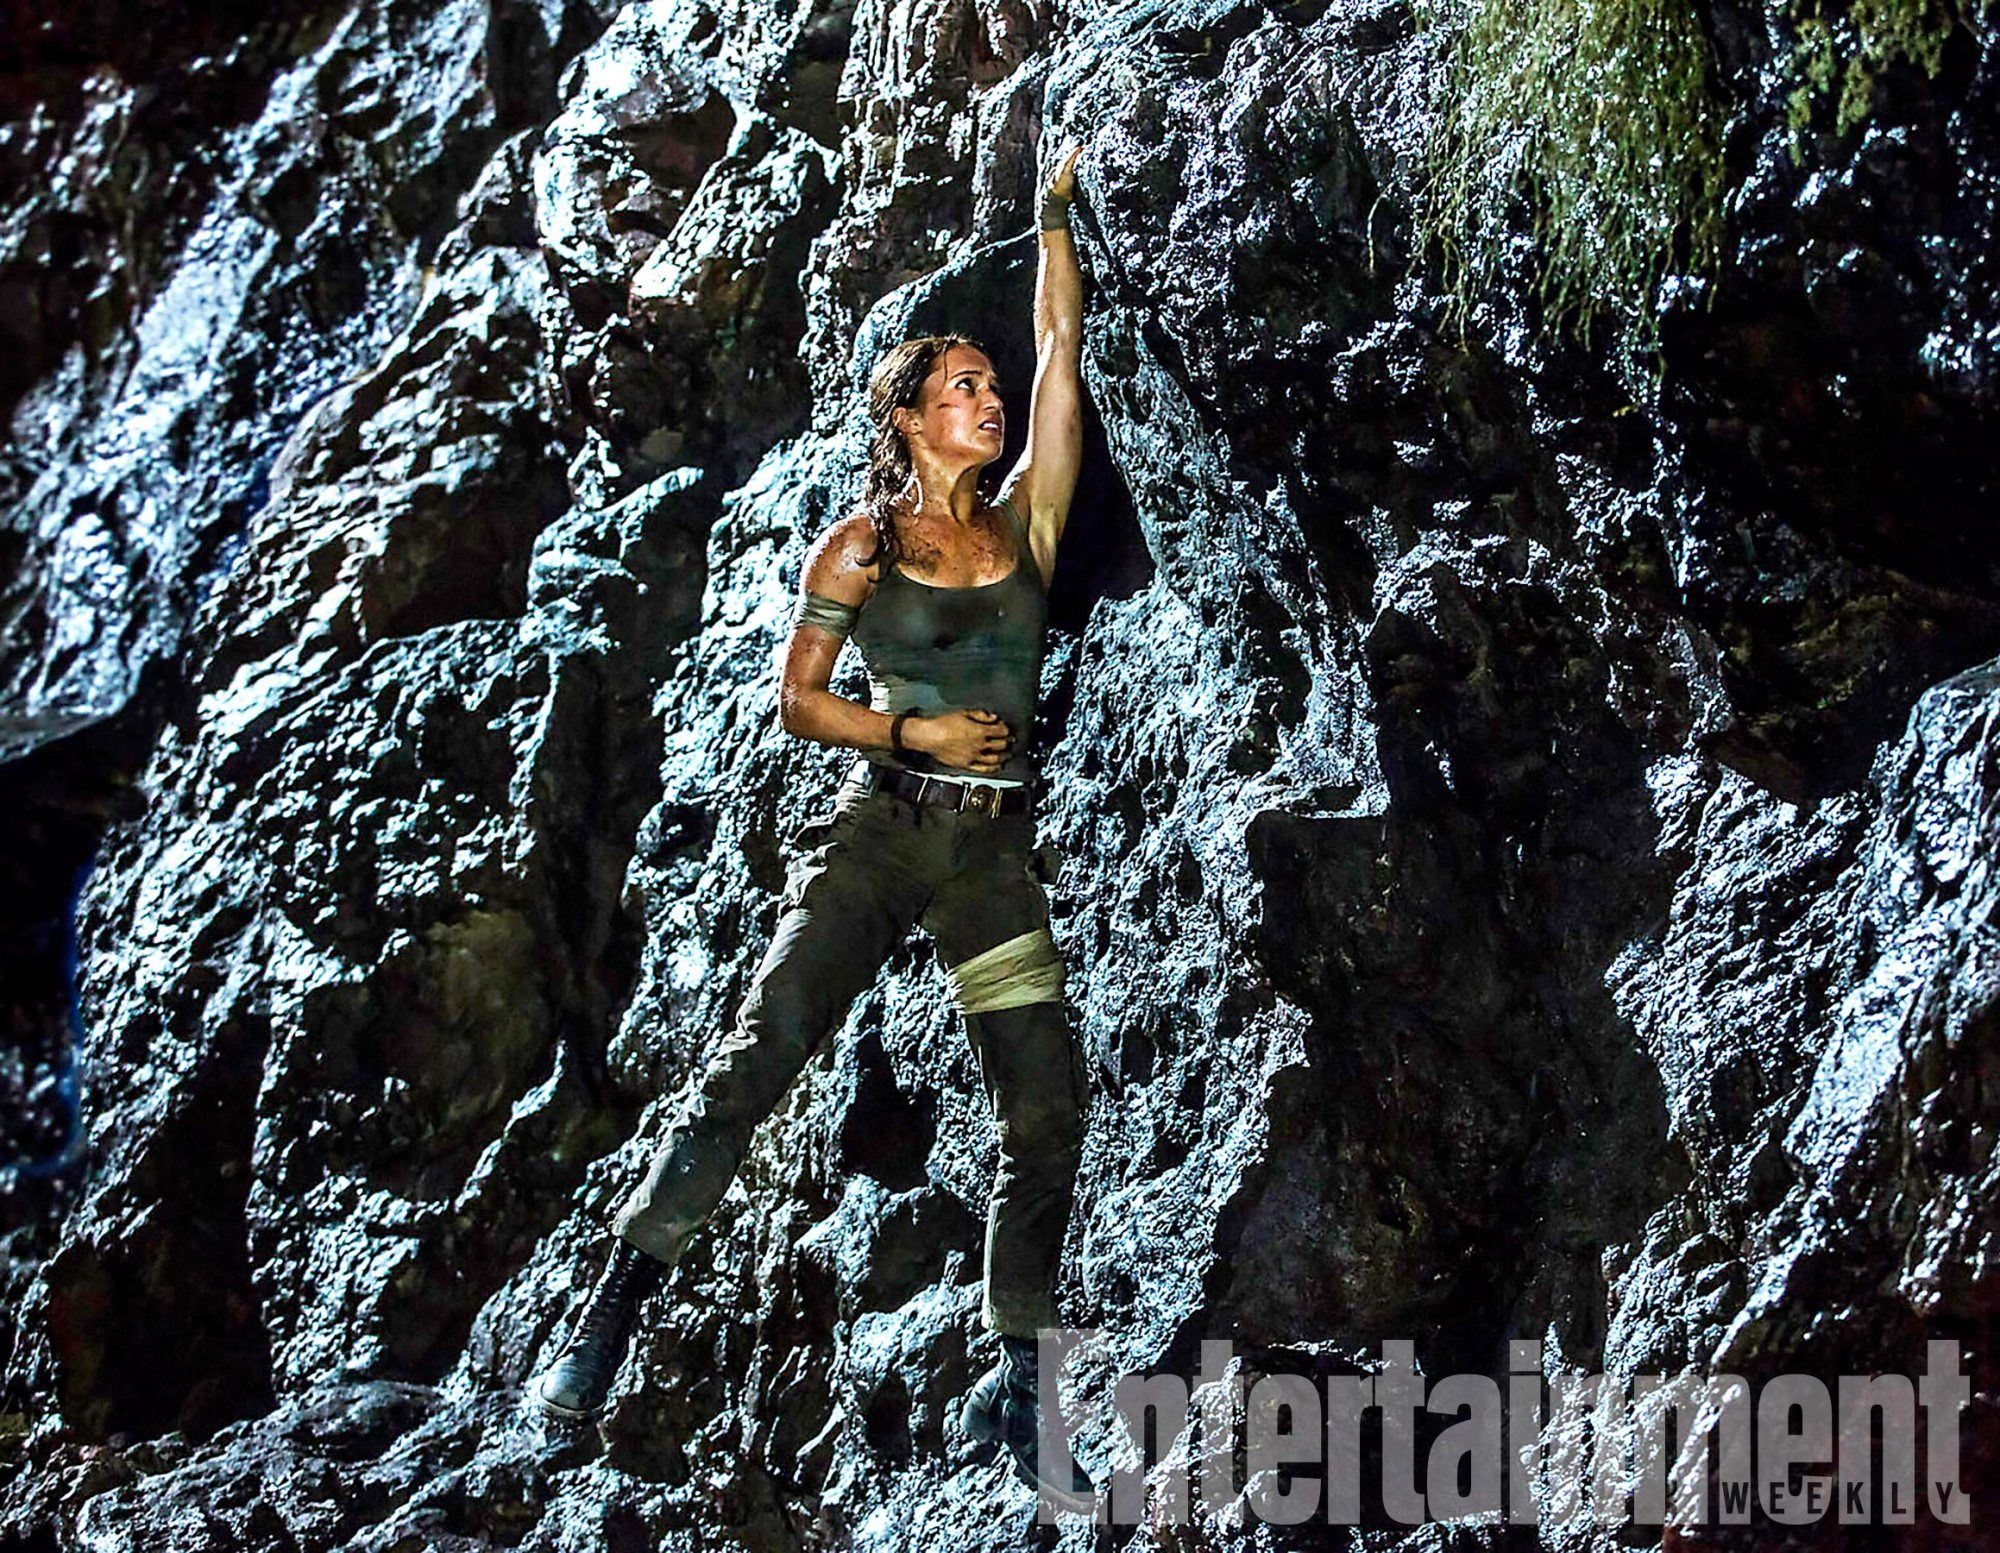 Tomb Raider Reboot Origin Story Teased By Alicia Vikander